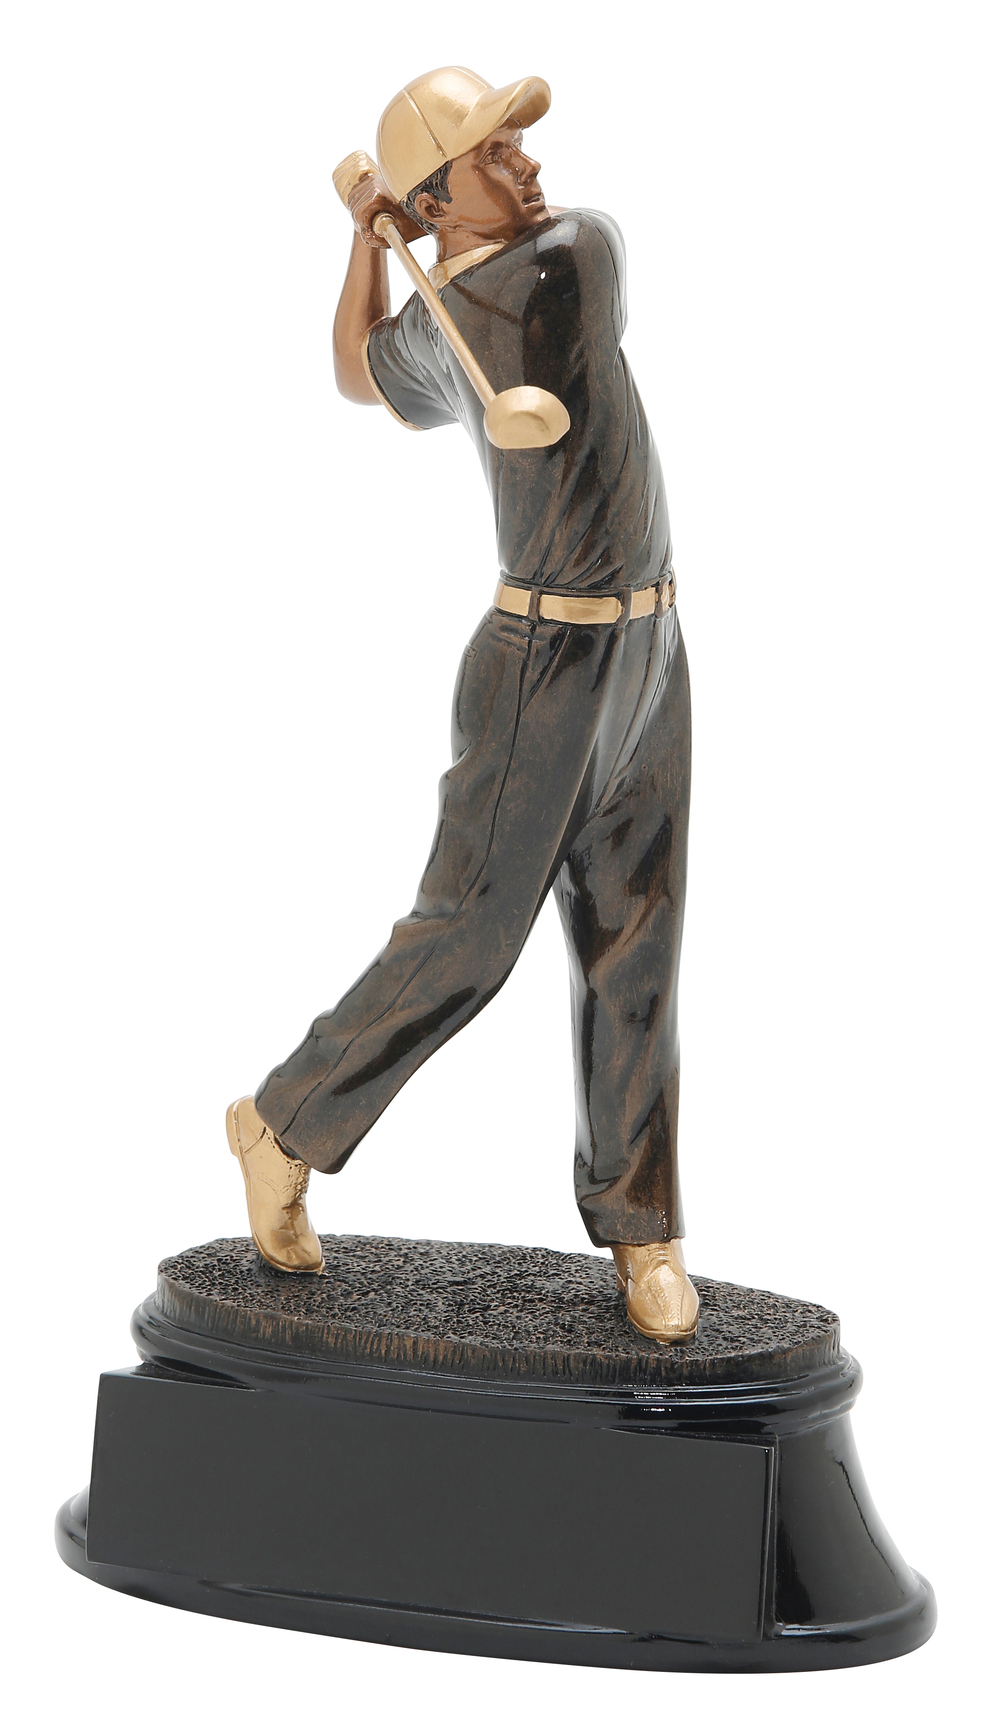 "Power Golf - Male Large: 90712GS - 12"" tall - $58 Medium: 90621GS - 10"" tall - $40 Small: 90521GS - 8.5"" tall - $27"